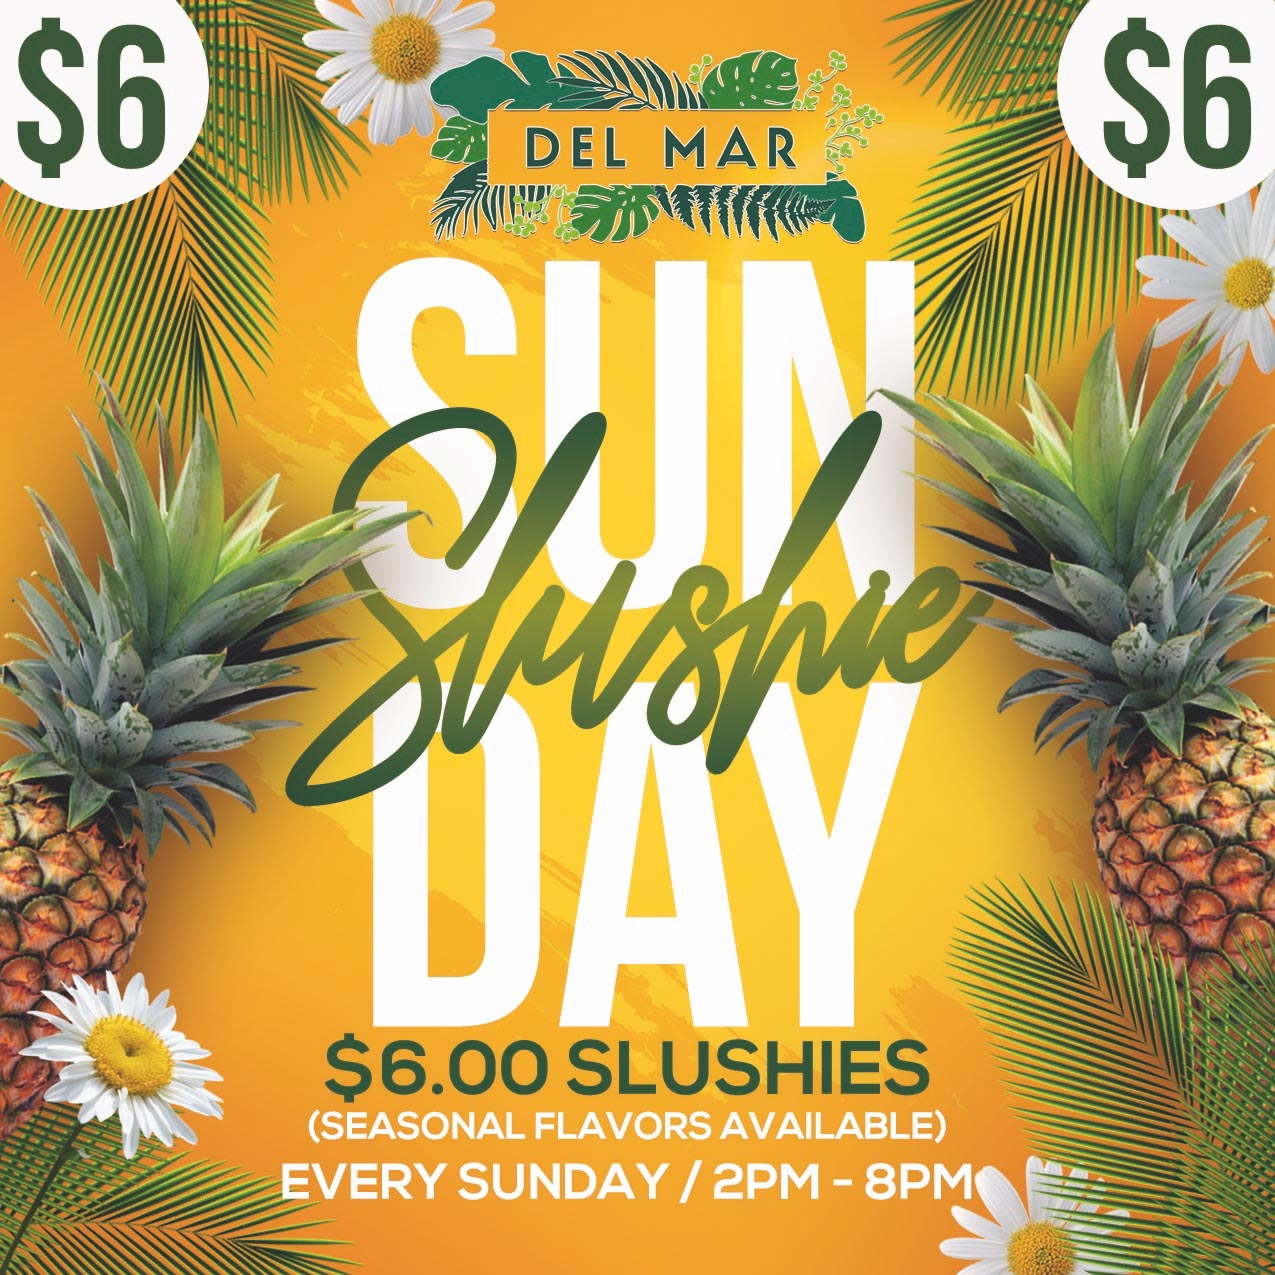 Slushie sundays 4x4 web flyer.jpg